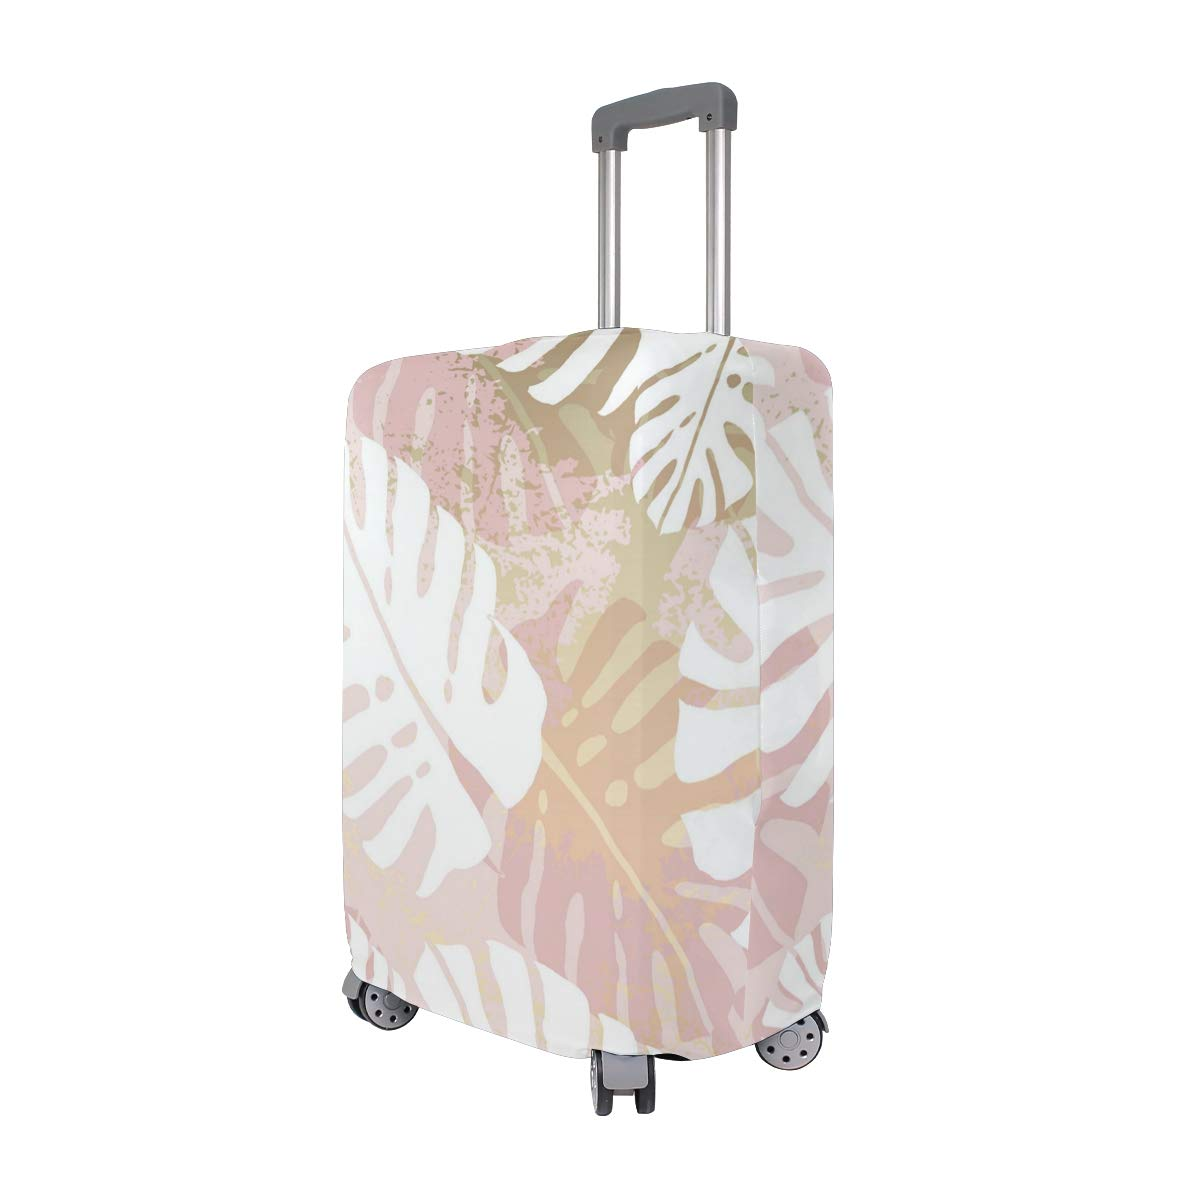 Marble Pattern Of Pink Leaves Traveler Lightweight Rotating Luggage Cover Can Carry With You Can Expand Travel Bag Trolley Rolling Luggage Cover